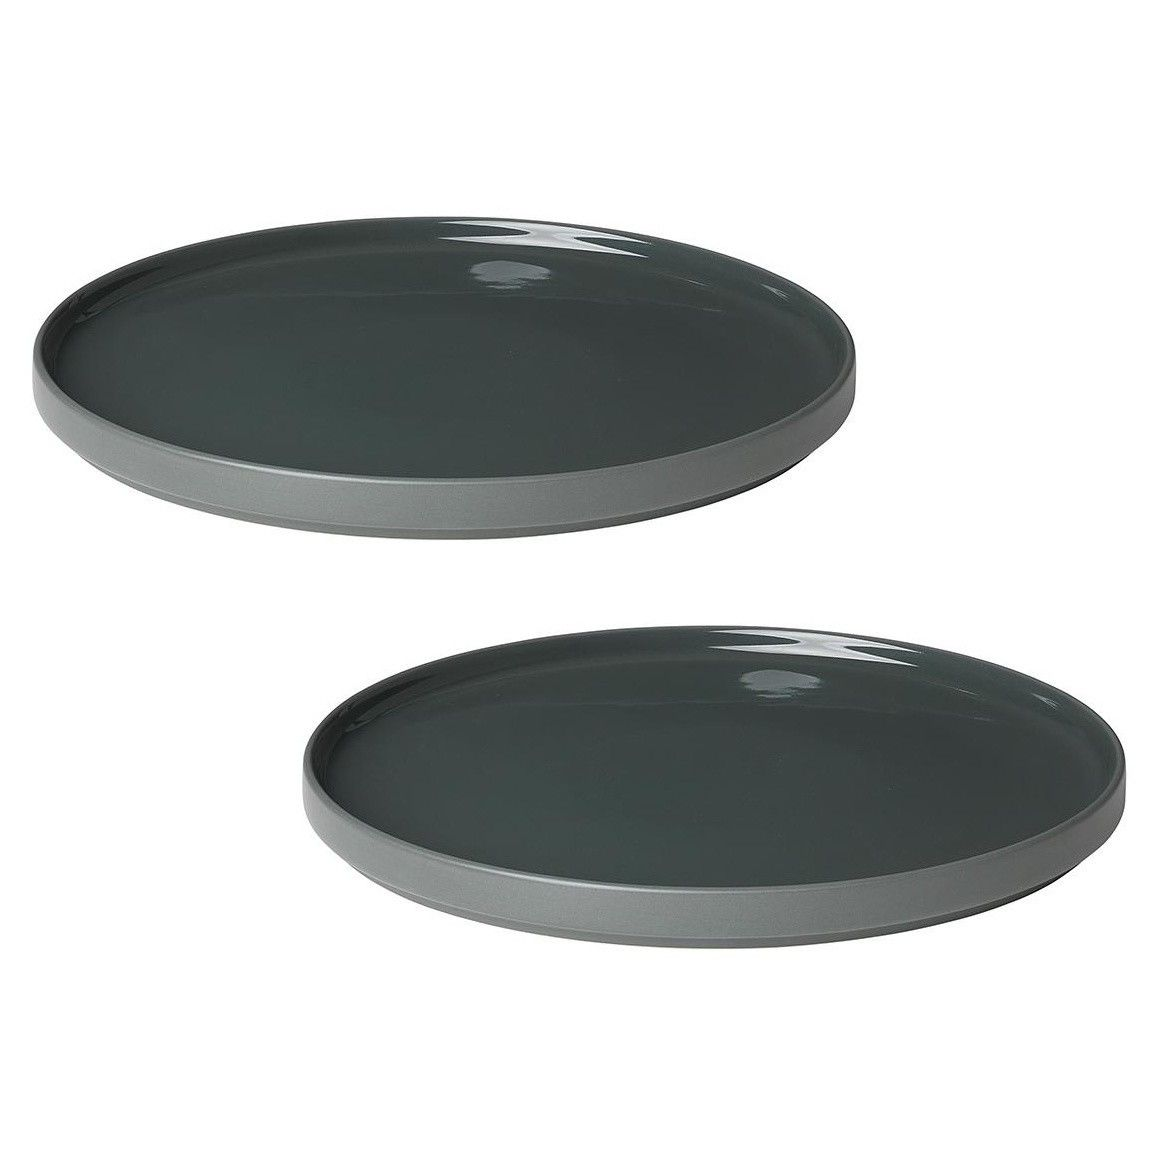 Blomus Set of 2 dinner plates MIO agave green - Trouva